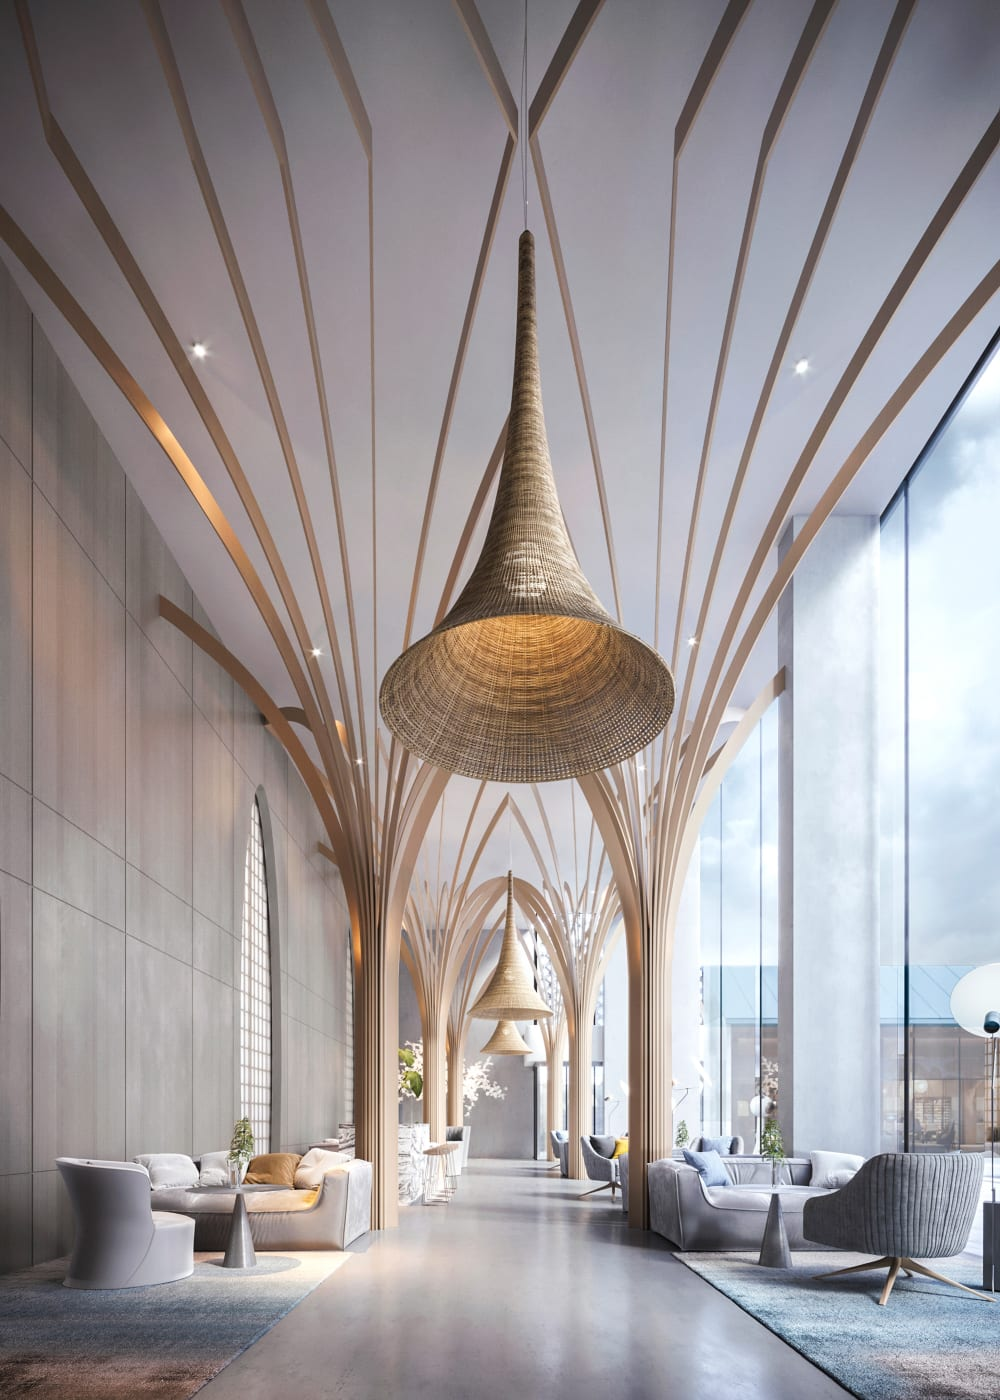 """Hotel lobby with wooden pillars imitating the shape of tree branches.<span class=""""sr-only""""> (opened in a new window/tab)</span>"""